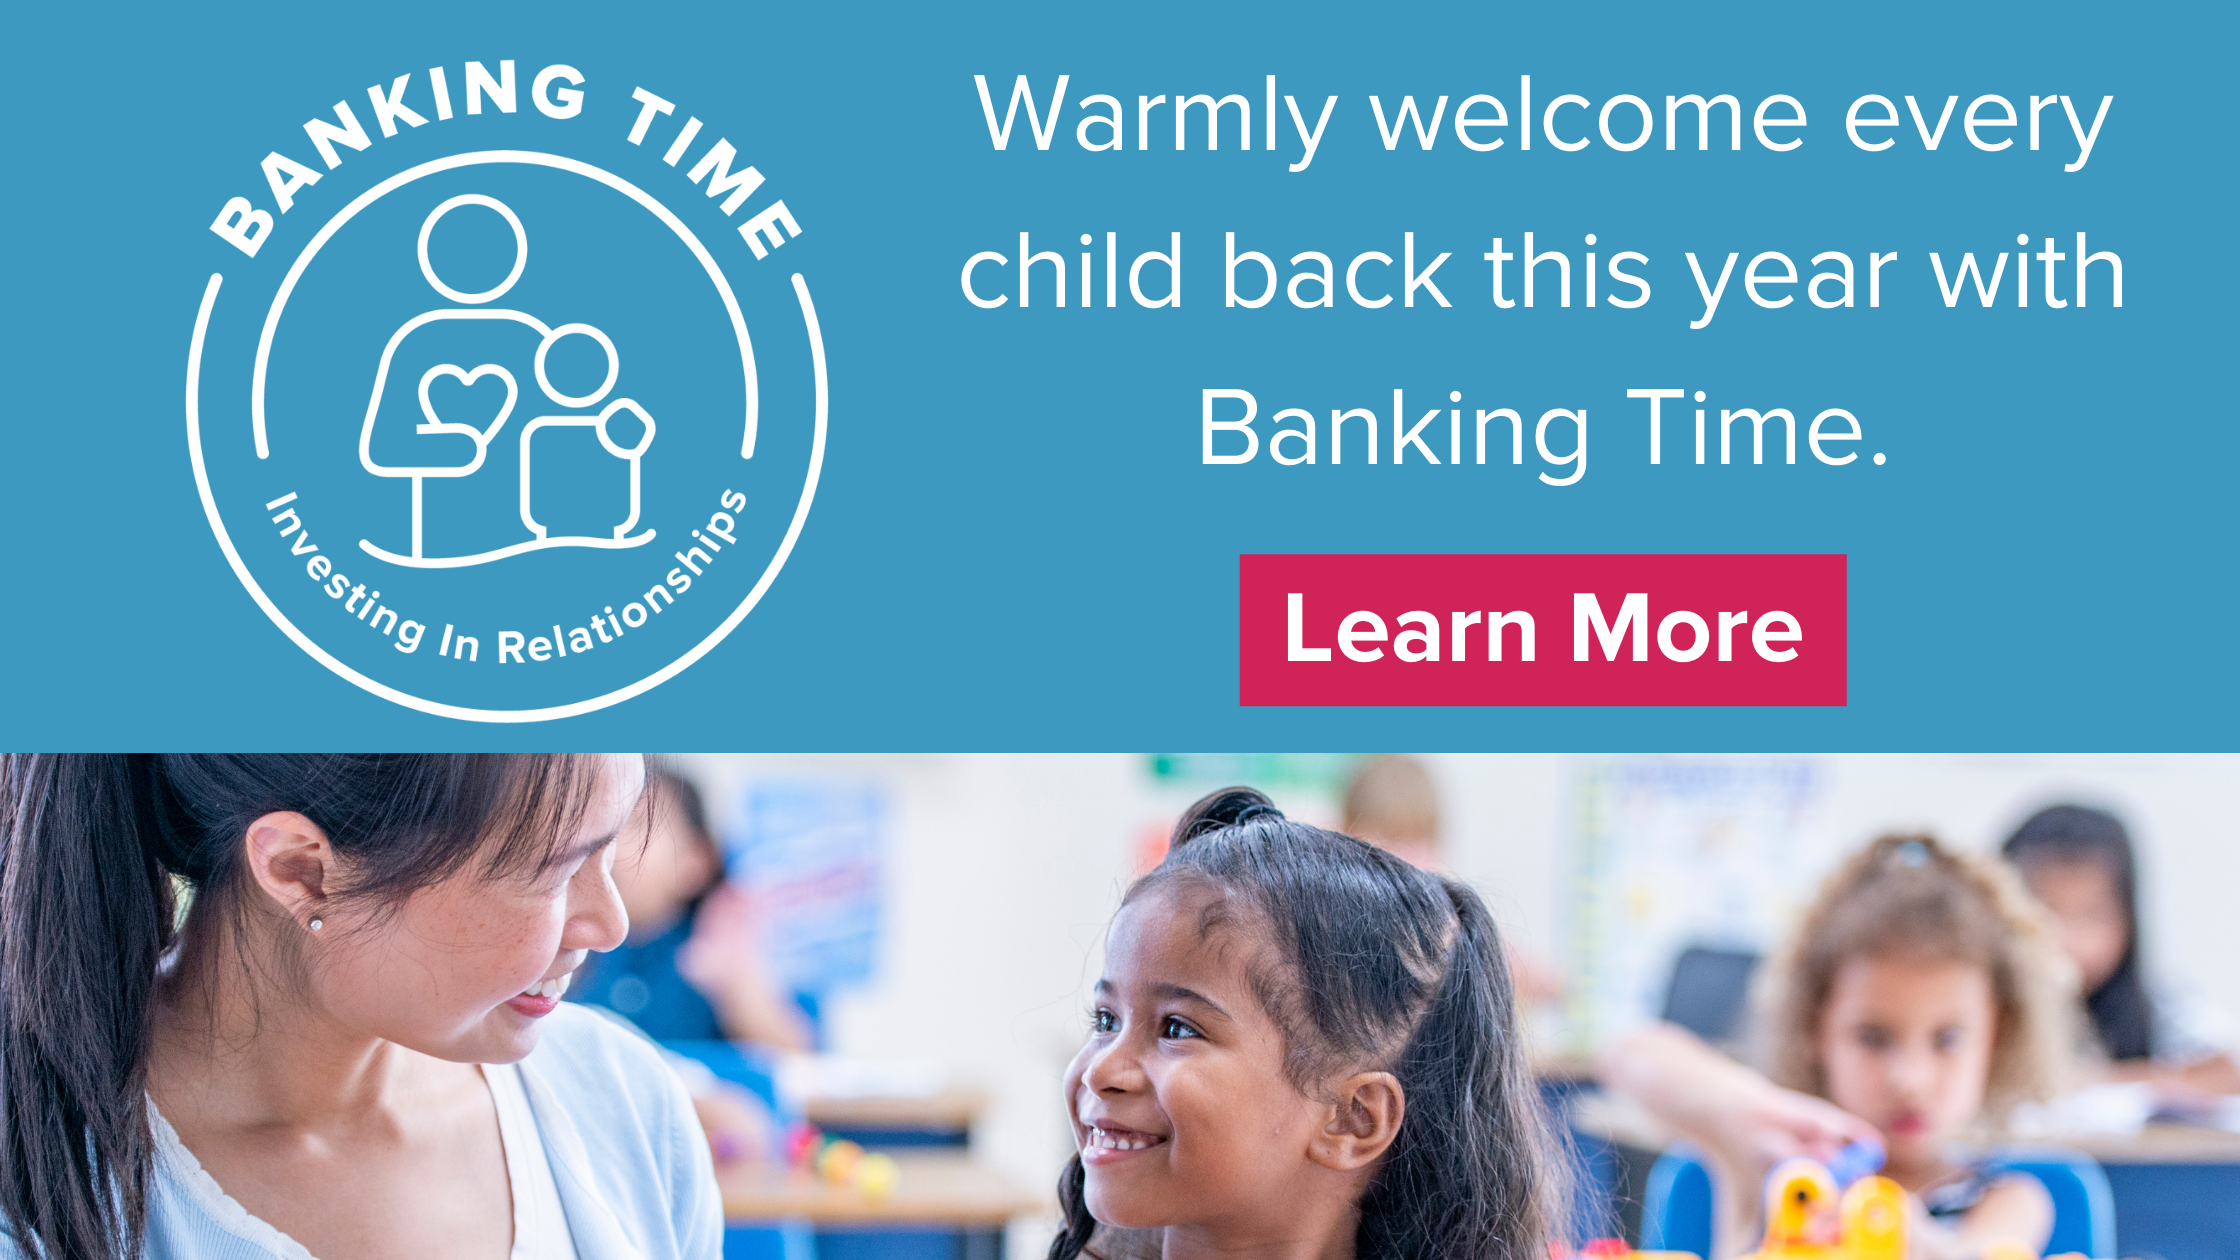 Warmly welcome every child back this year with Banking Time.